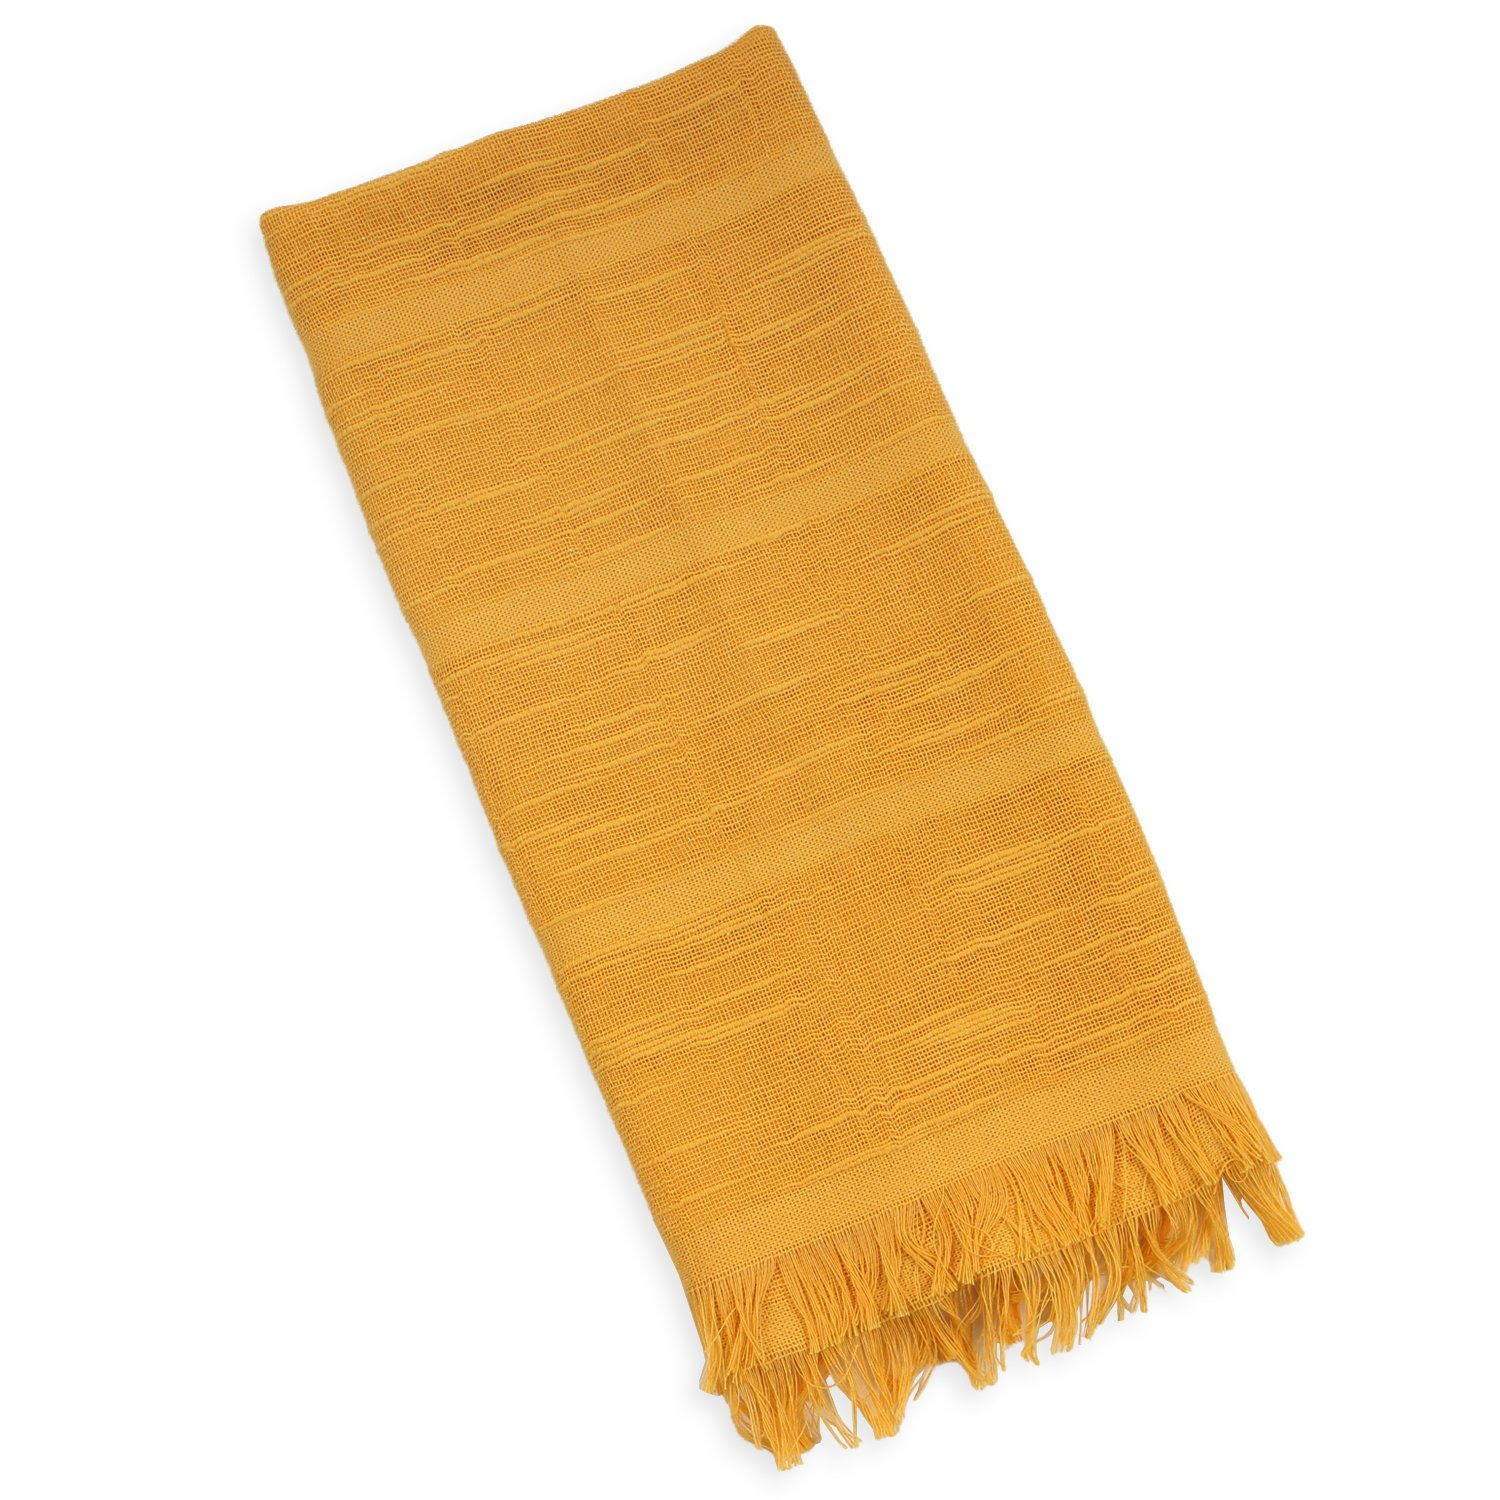 KOMESICHI Solid Soft Cotton Scarf for Spring Autumn